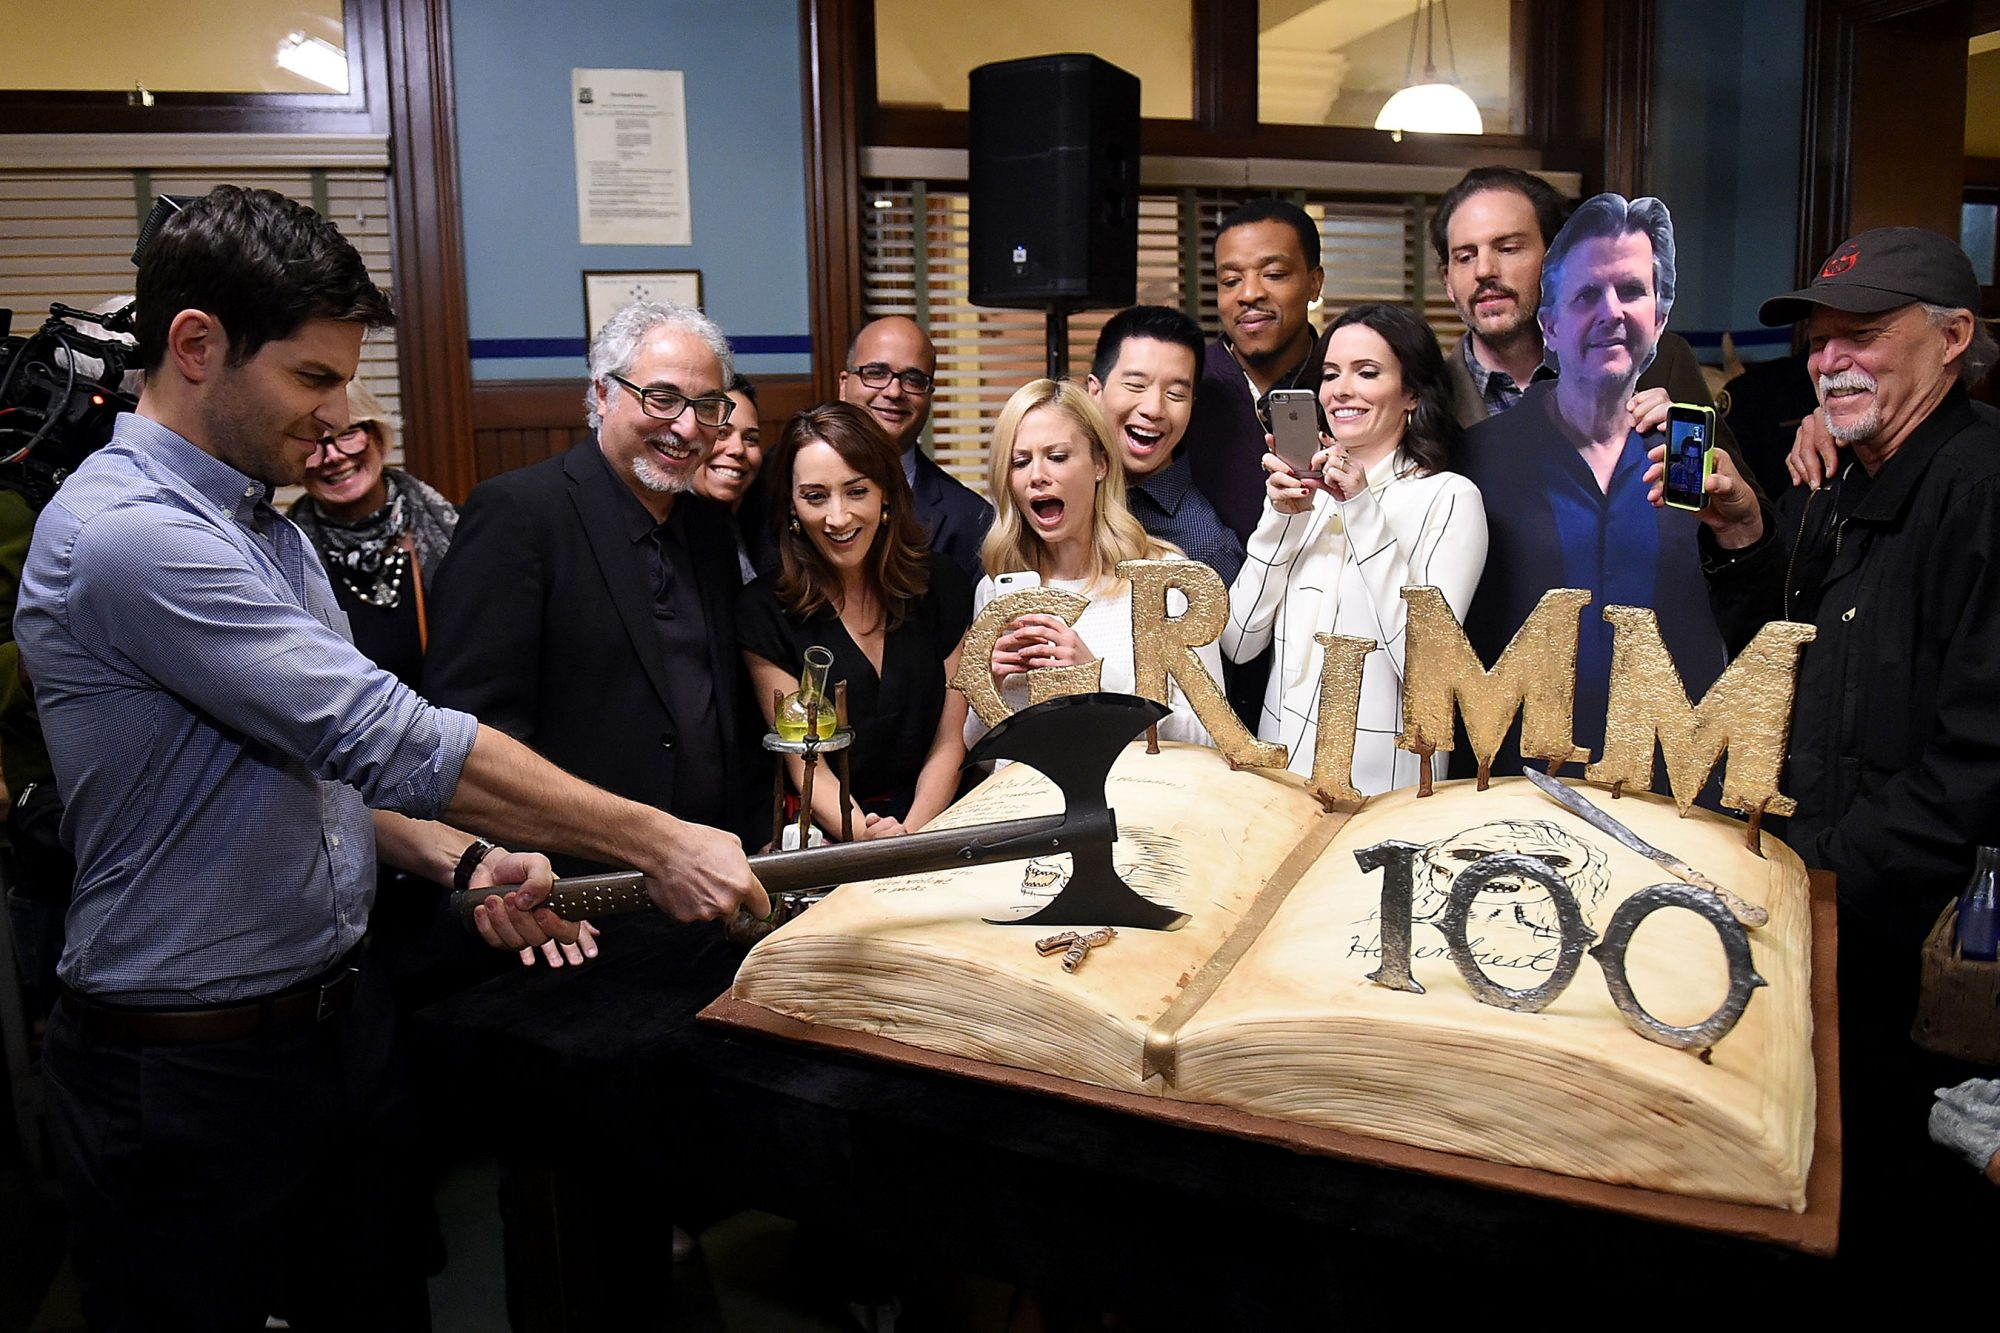 """Grimm"" 100th Episode Ceremony And Cake Cutting"